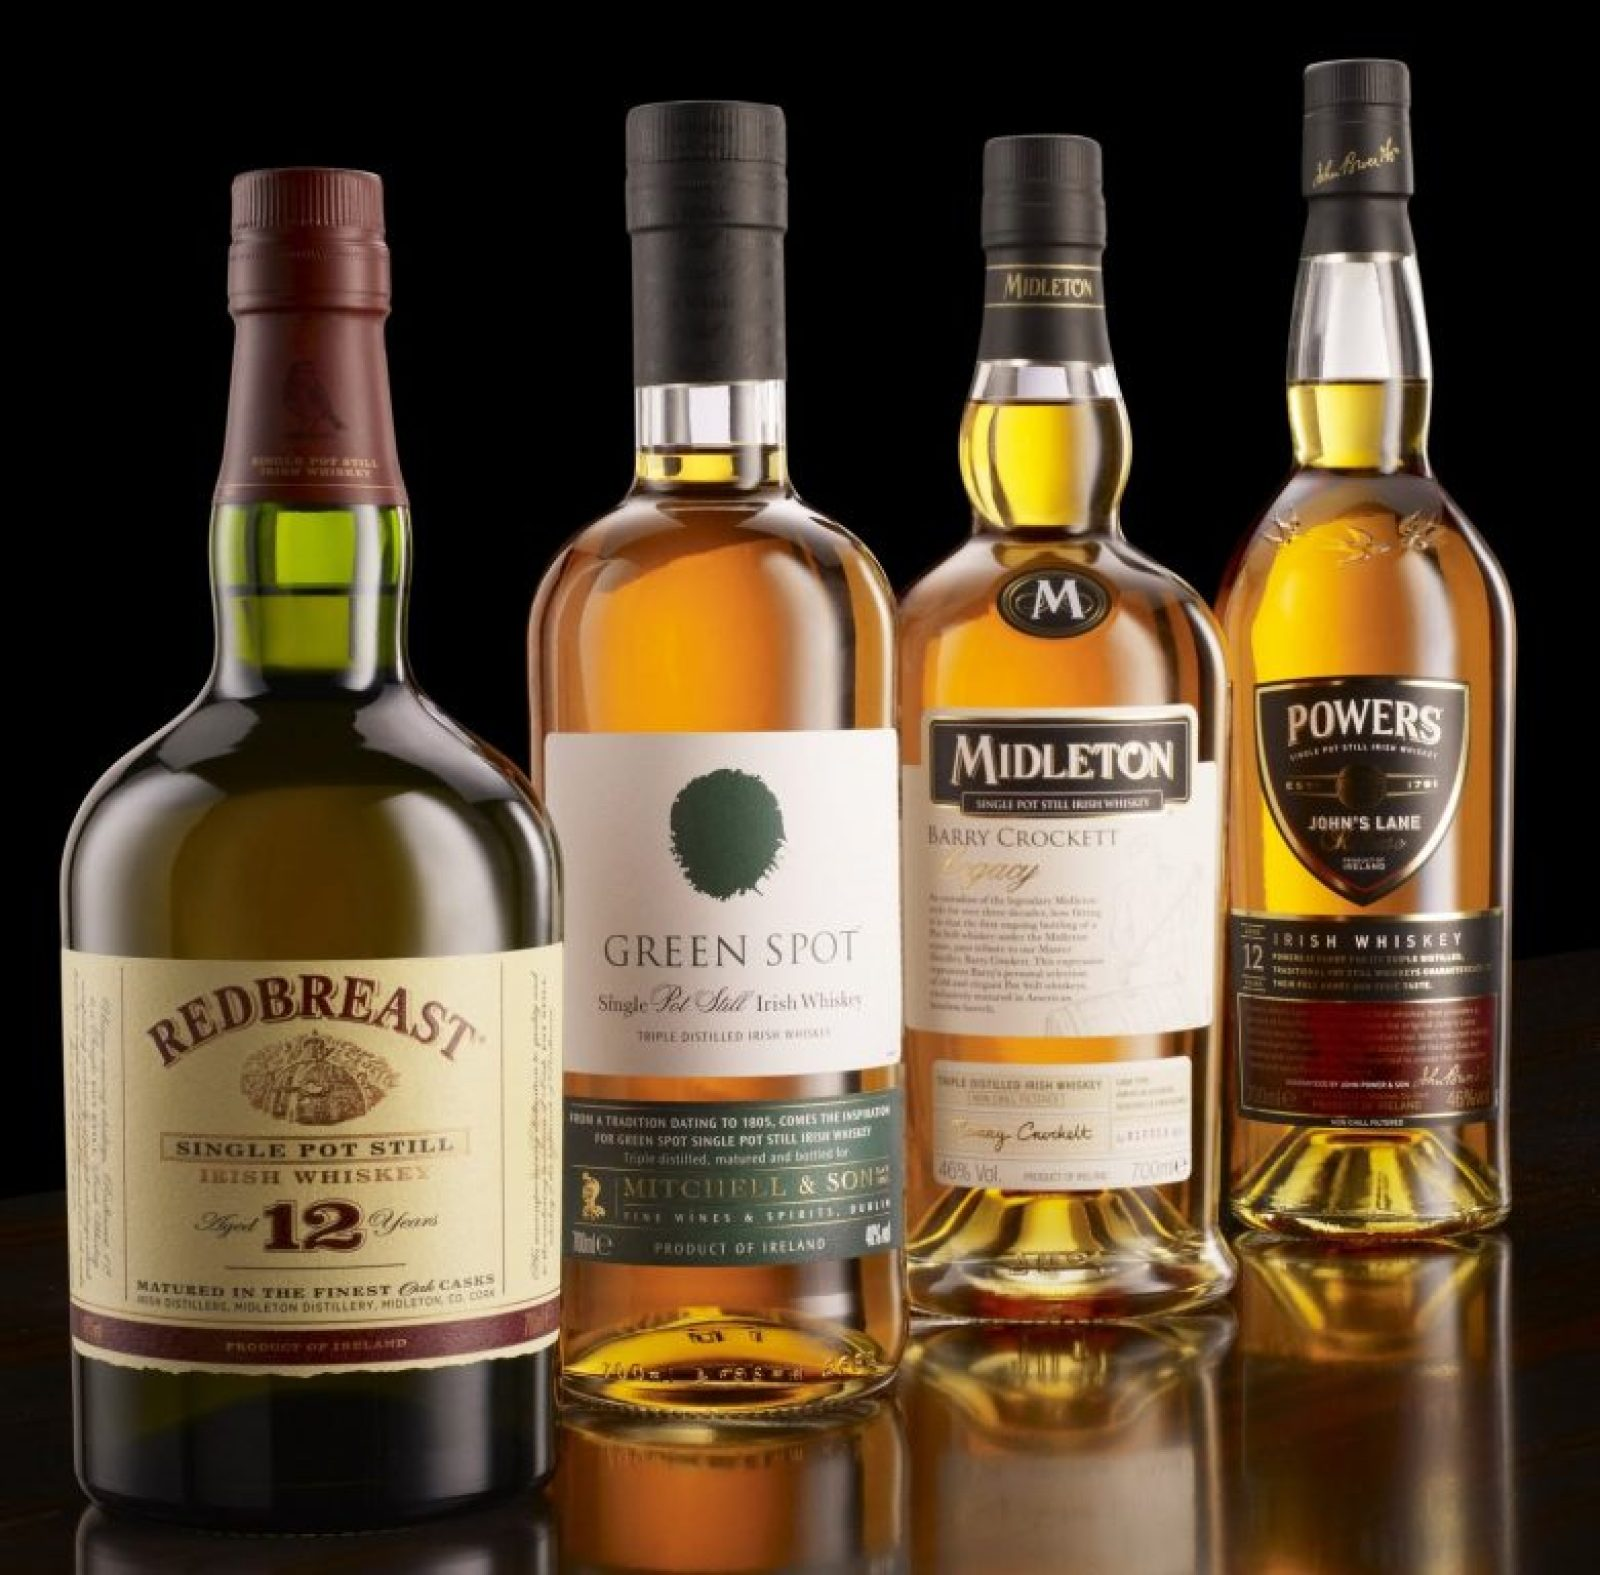 Midleton's Four Styles of Pot Still Whiskey Photo Credit: angelshare.it